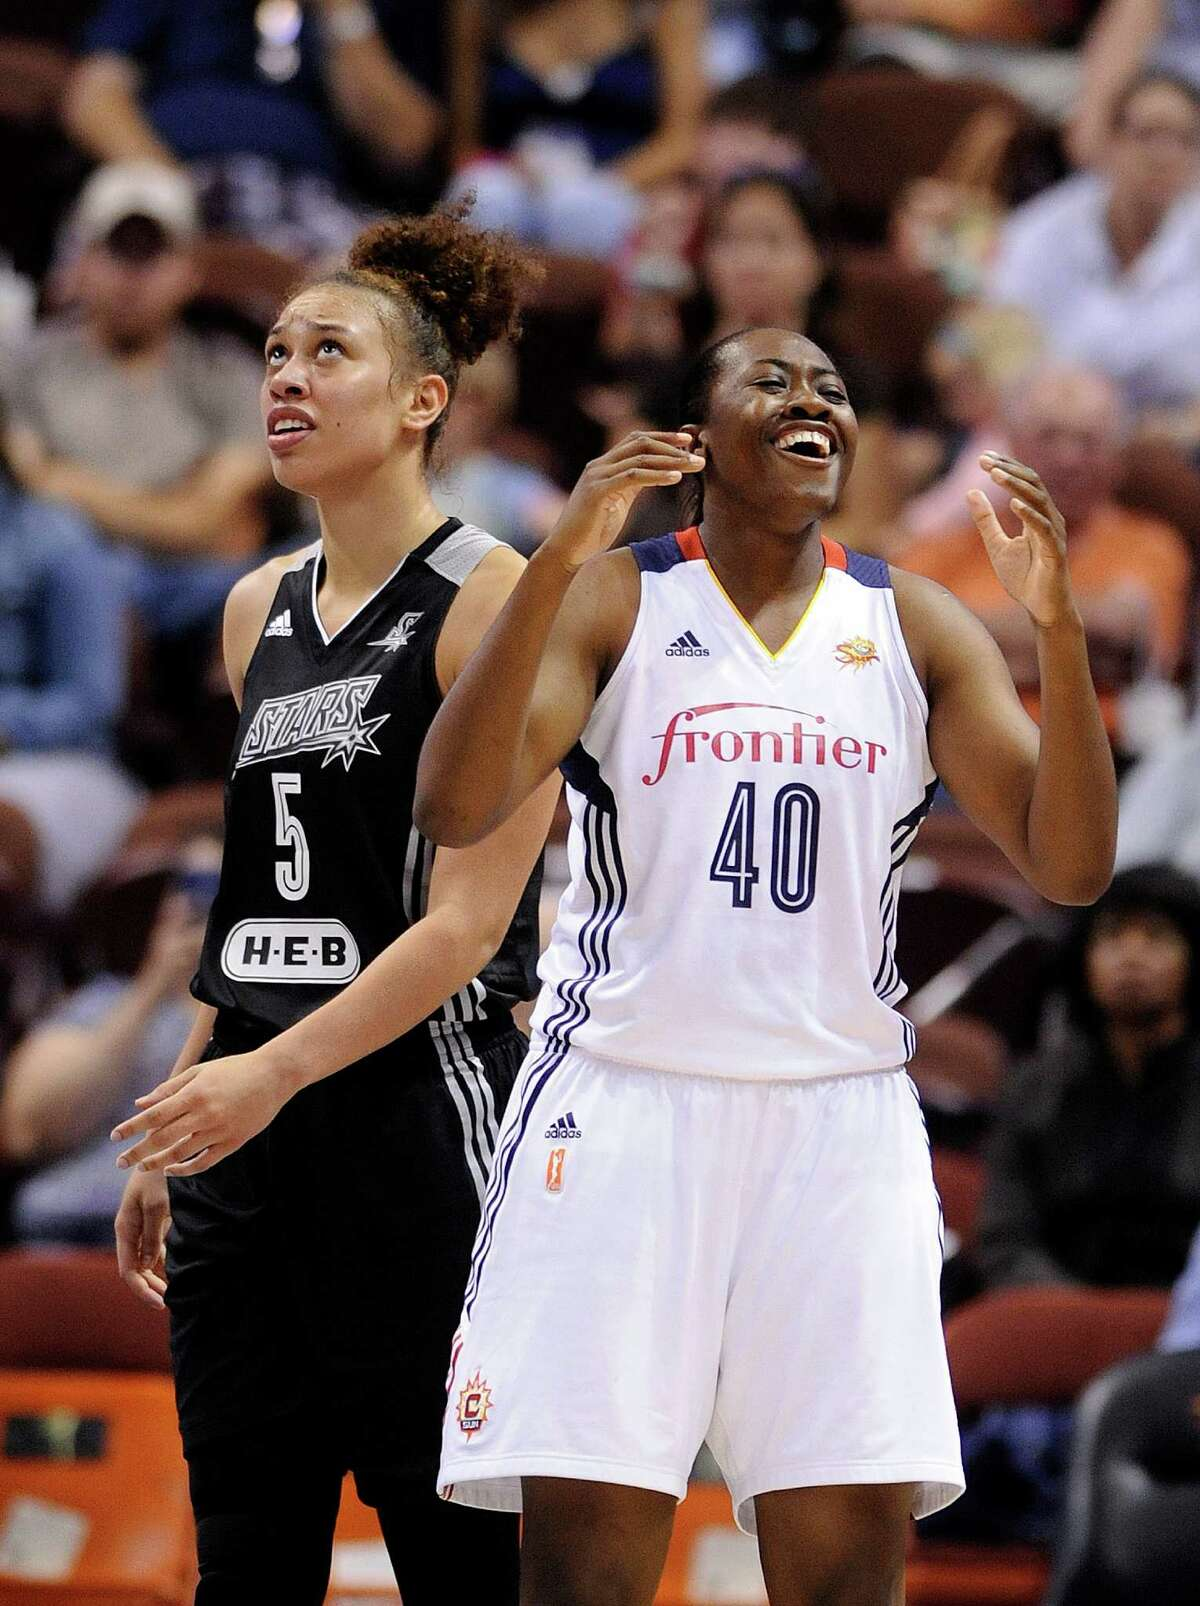 Connecticut Sun's Shekinna Stricklan (40) reacts to a call as San Antonio Stars's Dearica Hamby (5) looks at the scoreboard late in the second half of Connecticut's 82-51 victory in a WNBA basketball game in Uncasville, Conn., on Tuesday, Aug. 4, 2015.